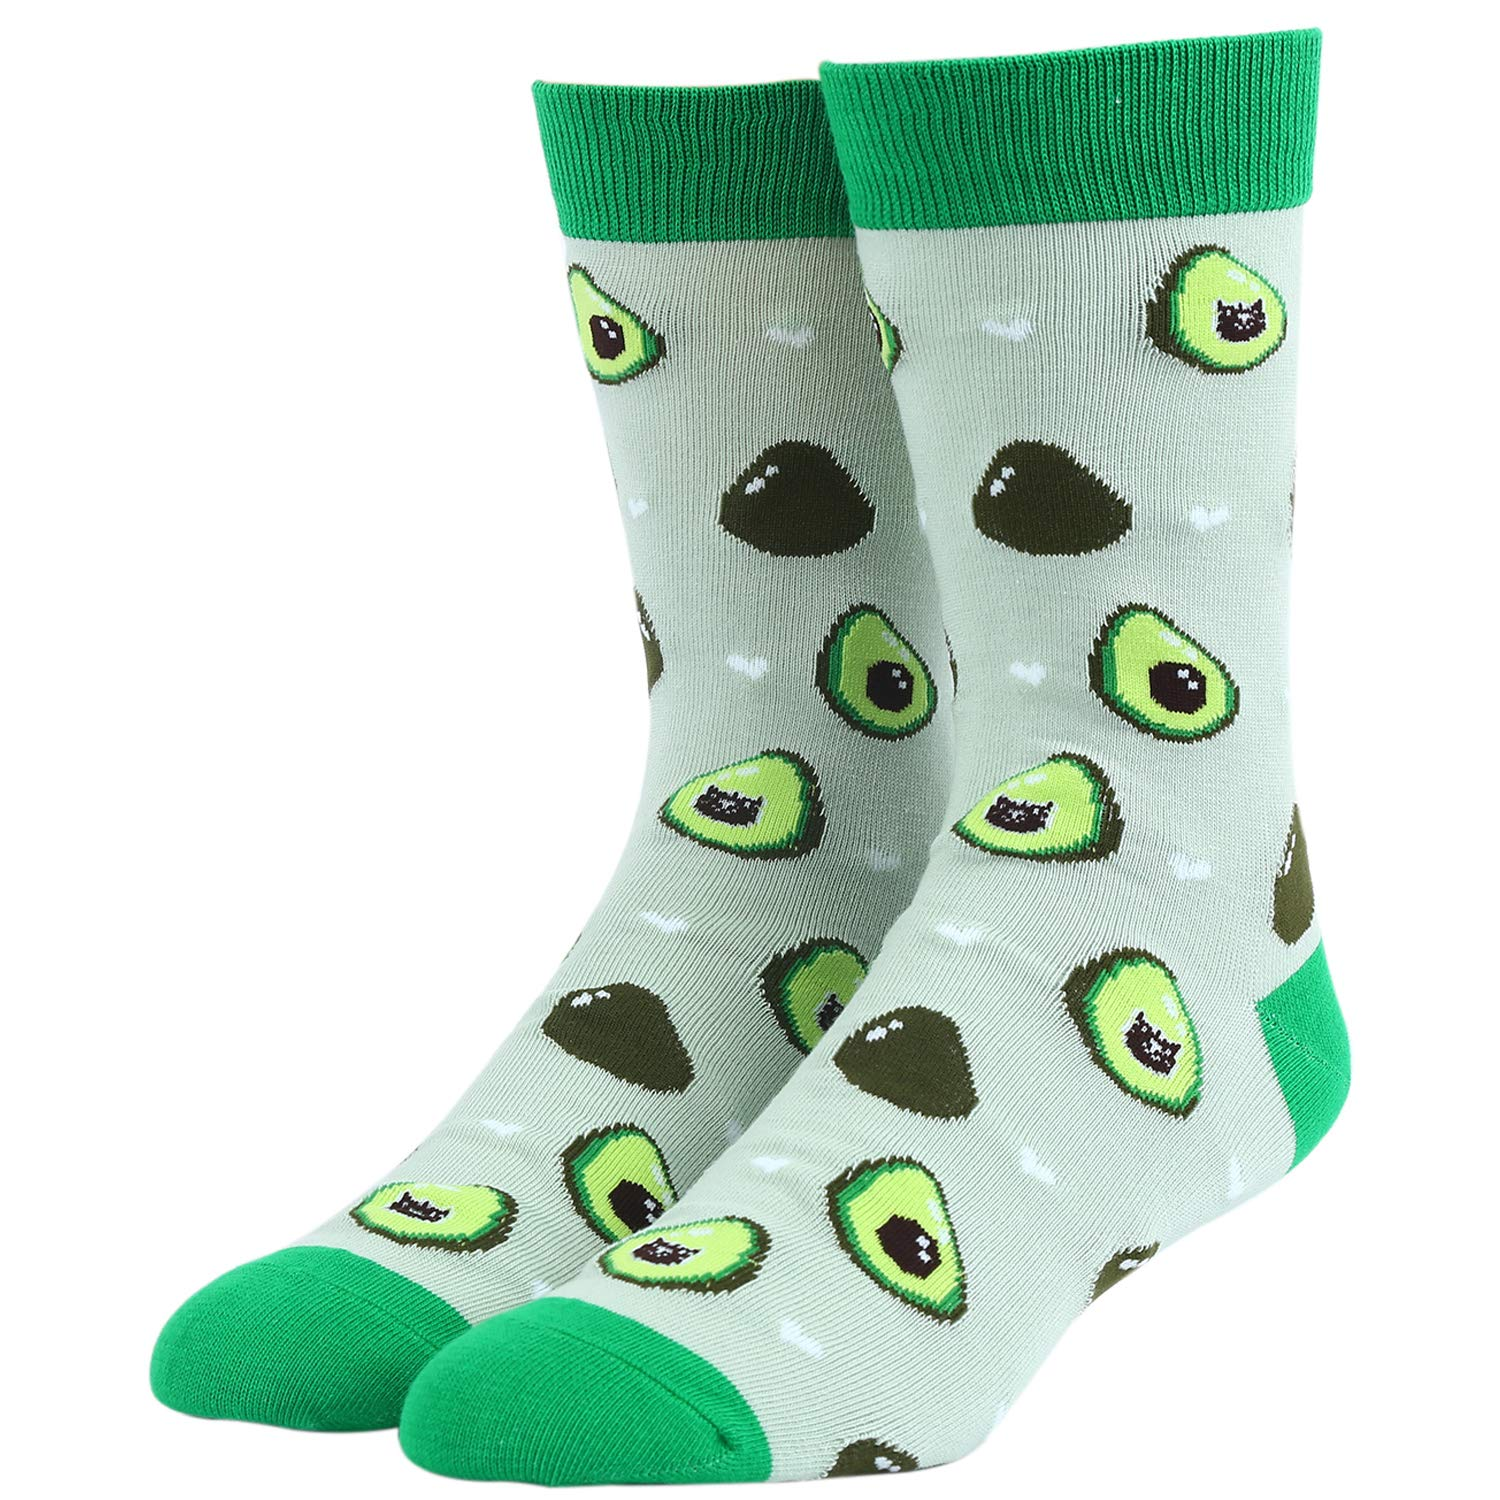 Mens Funny Novelty Crew Socks Pineapple Avocado